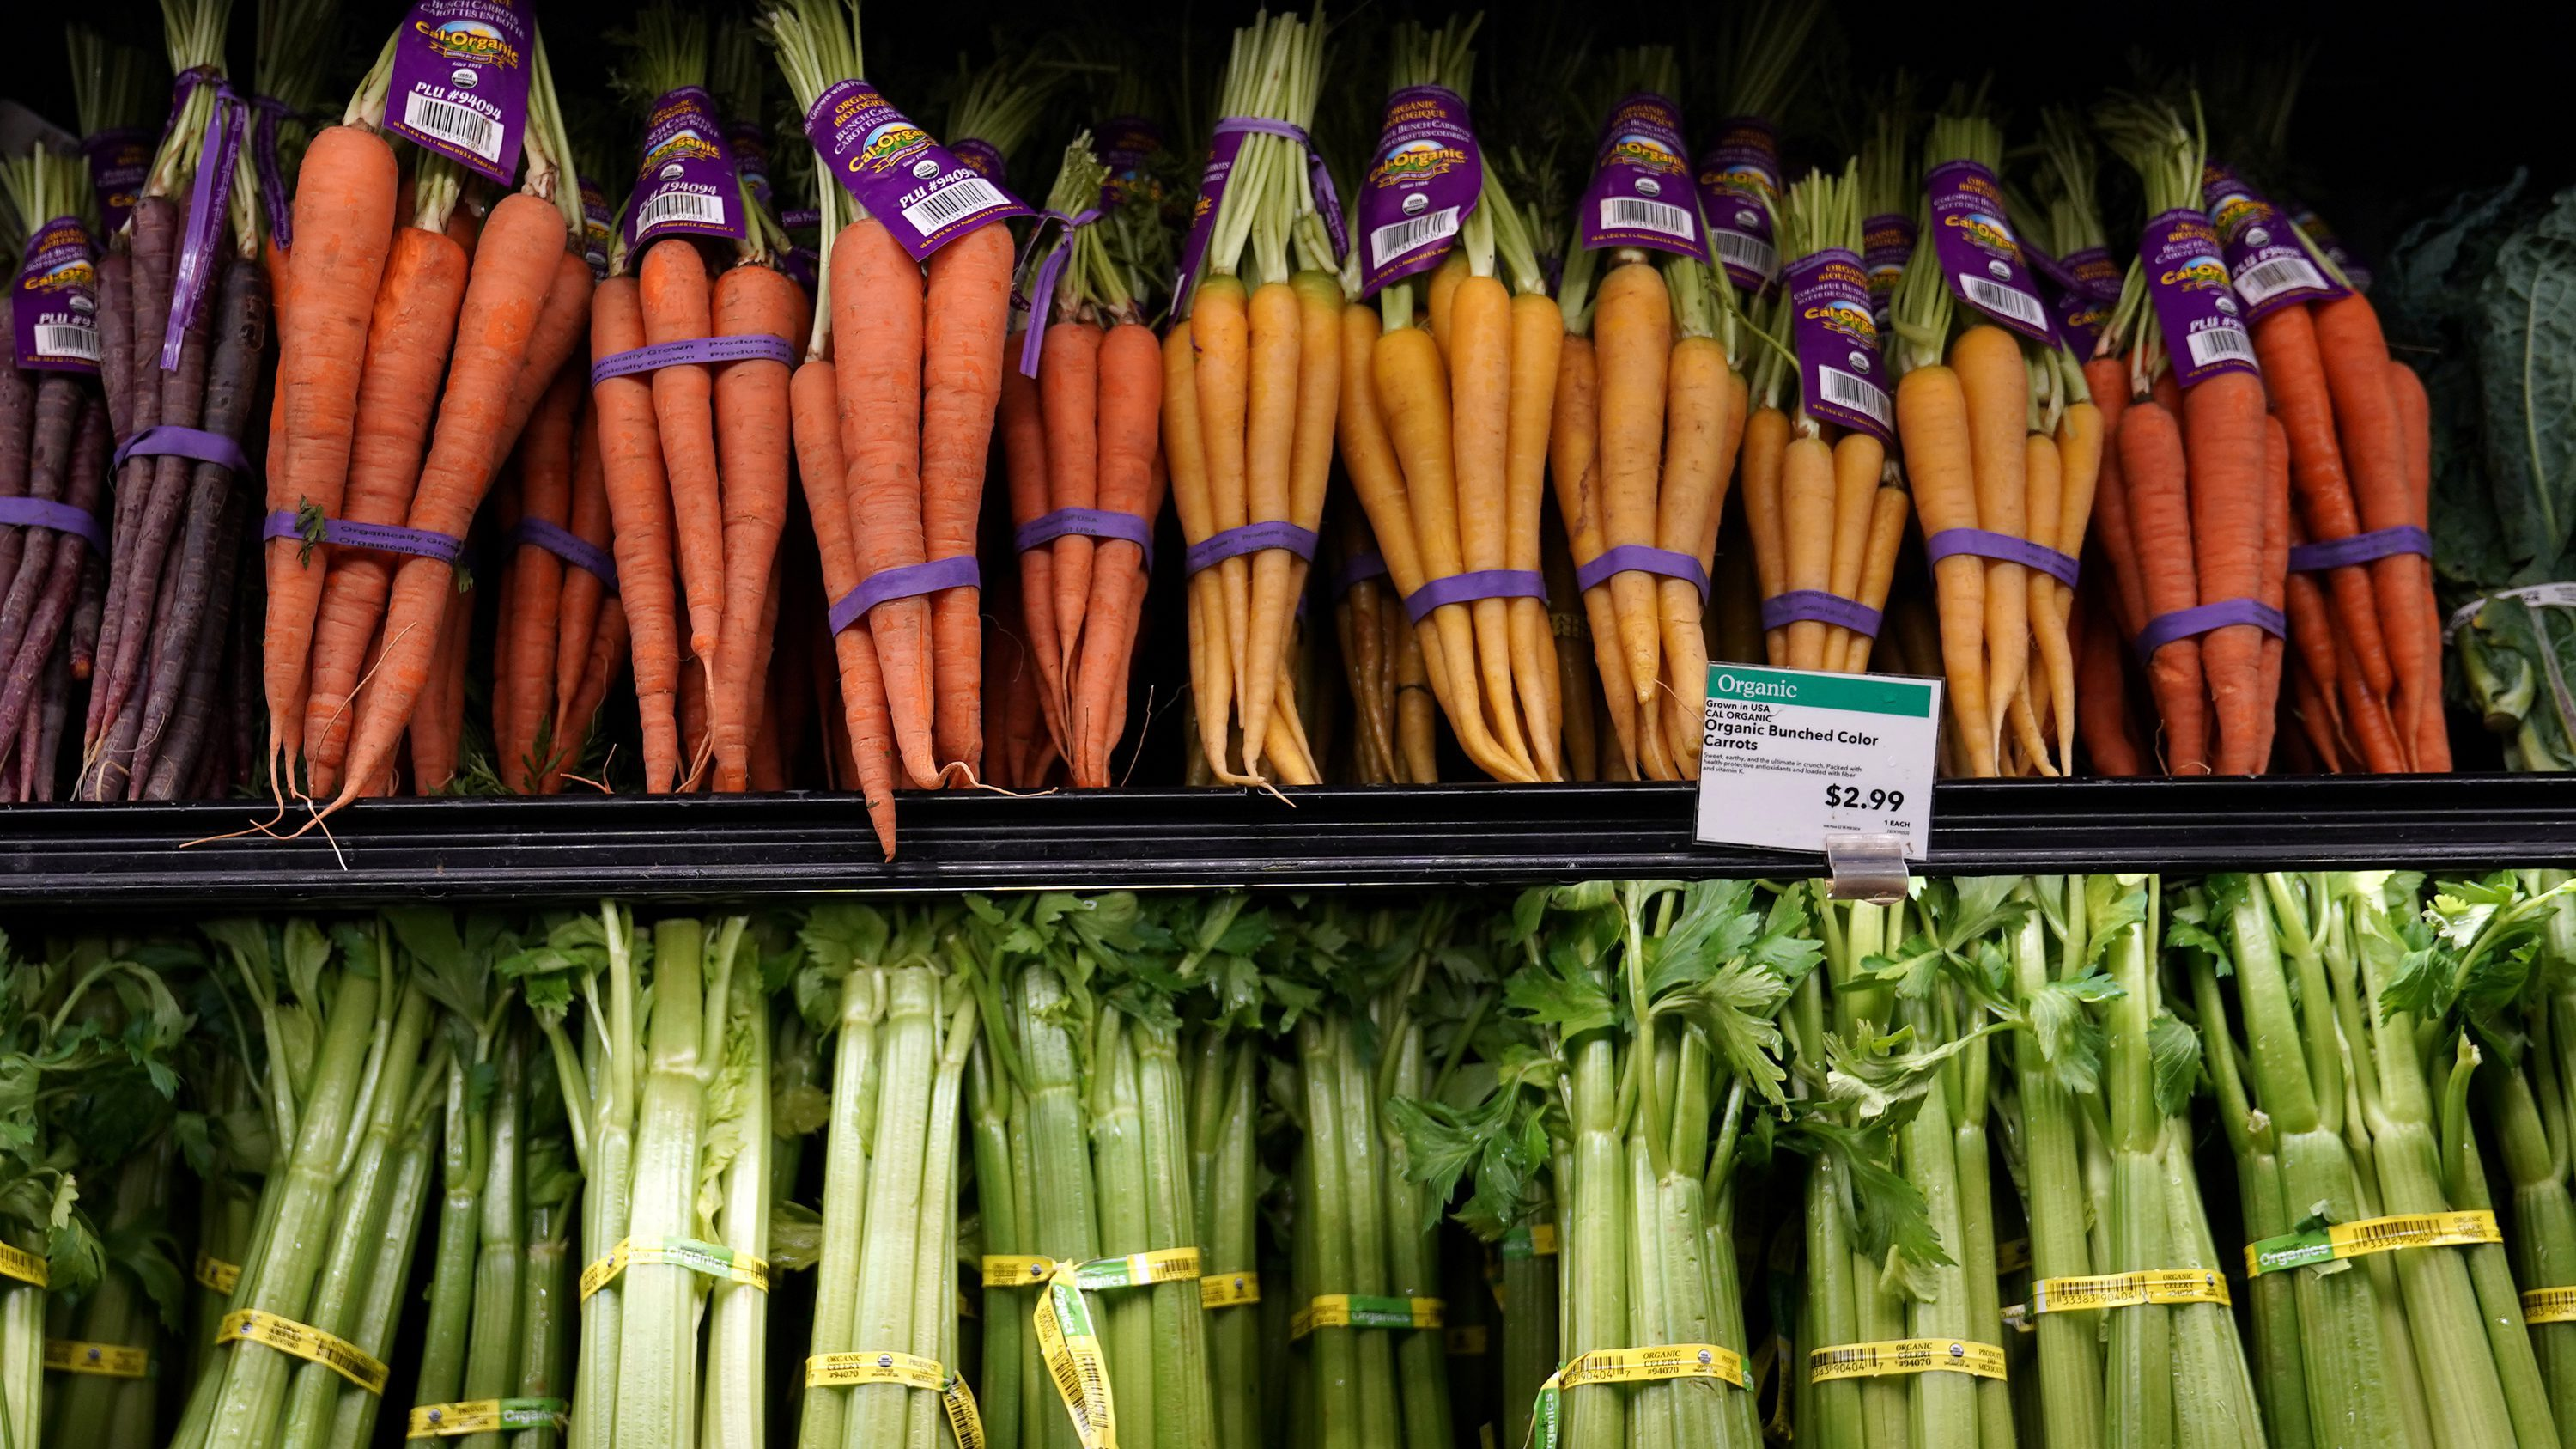 Vegetables for sale are pictured inside a Whole Foods Market in the Manhattan borough of New York City, New York, U.S. June 16, 2017.